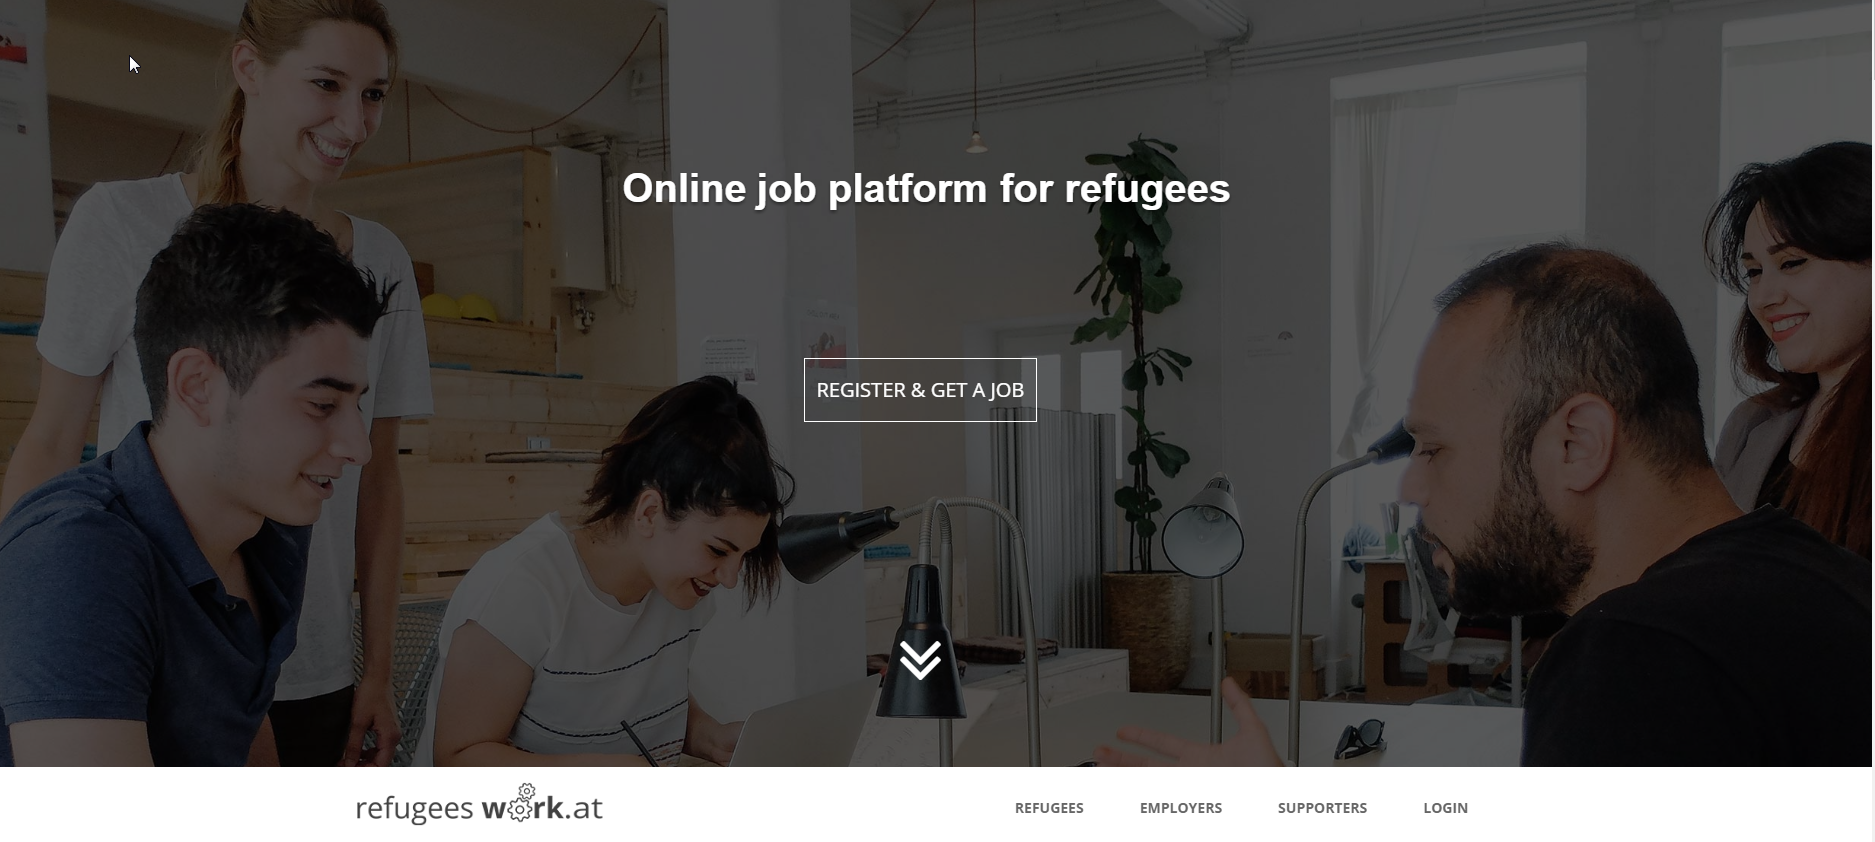 2017-03-16 10_36_46-RefugeesWork.at - We connect refugees & employers in Austria.